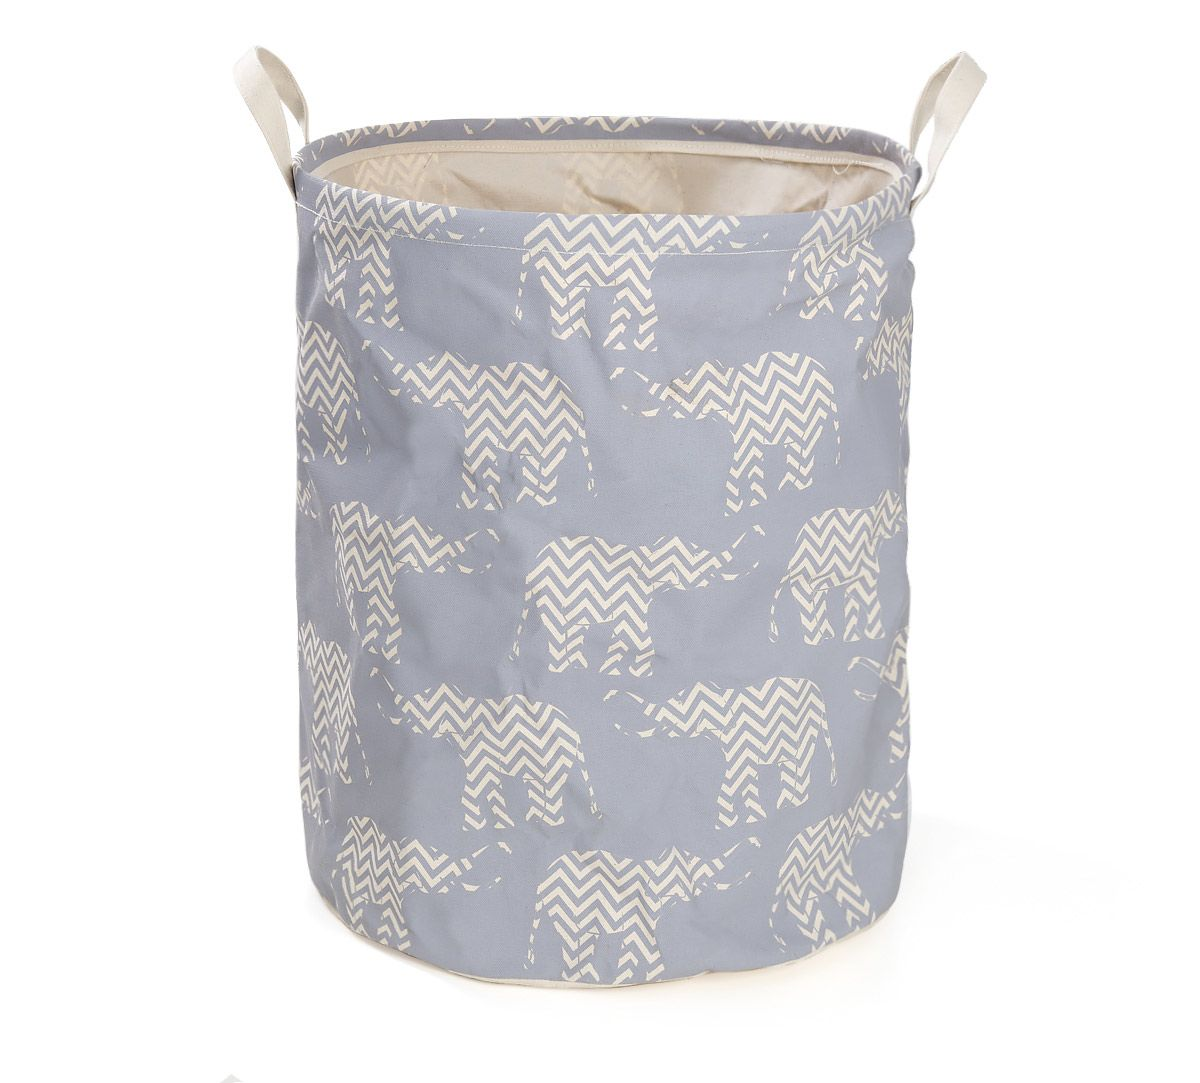 India Circus Chevron Tusker Round Laundry Basket